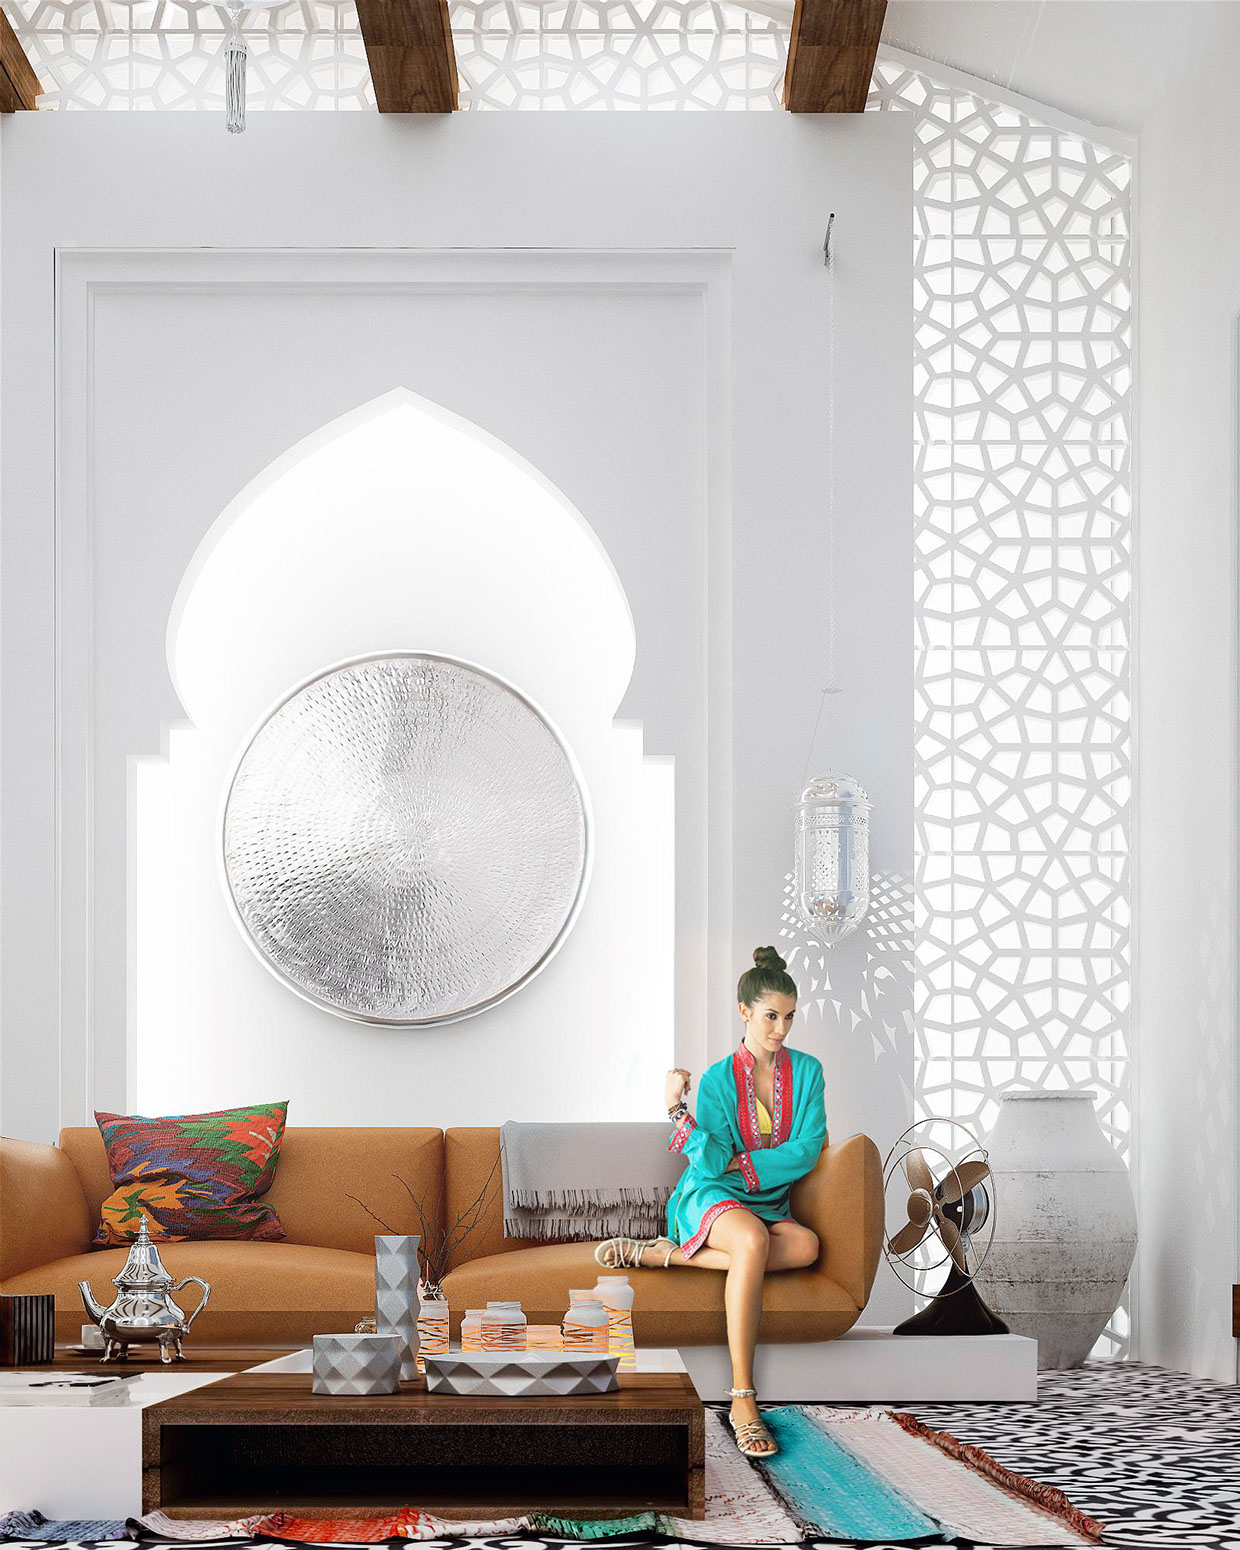 Moroccan Room Design Ideas: Moroccan Style Interior Design